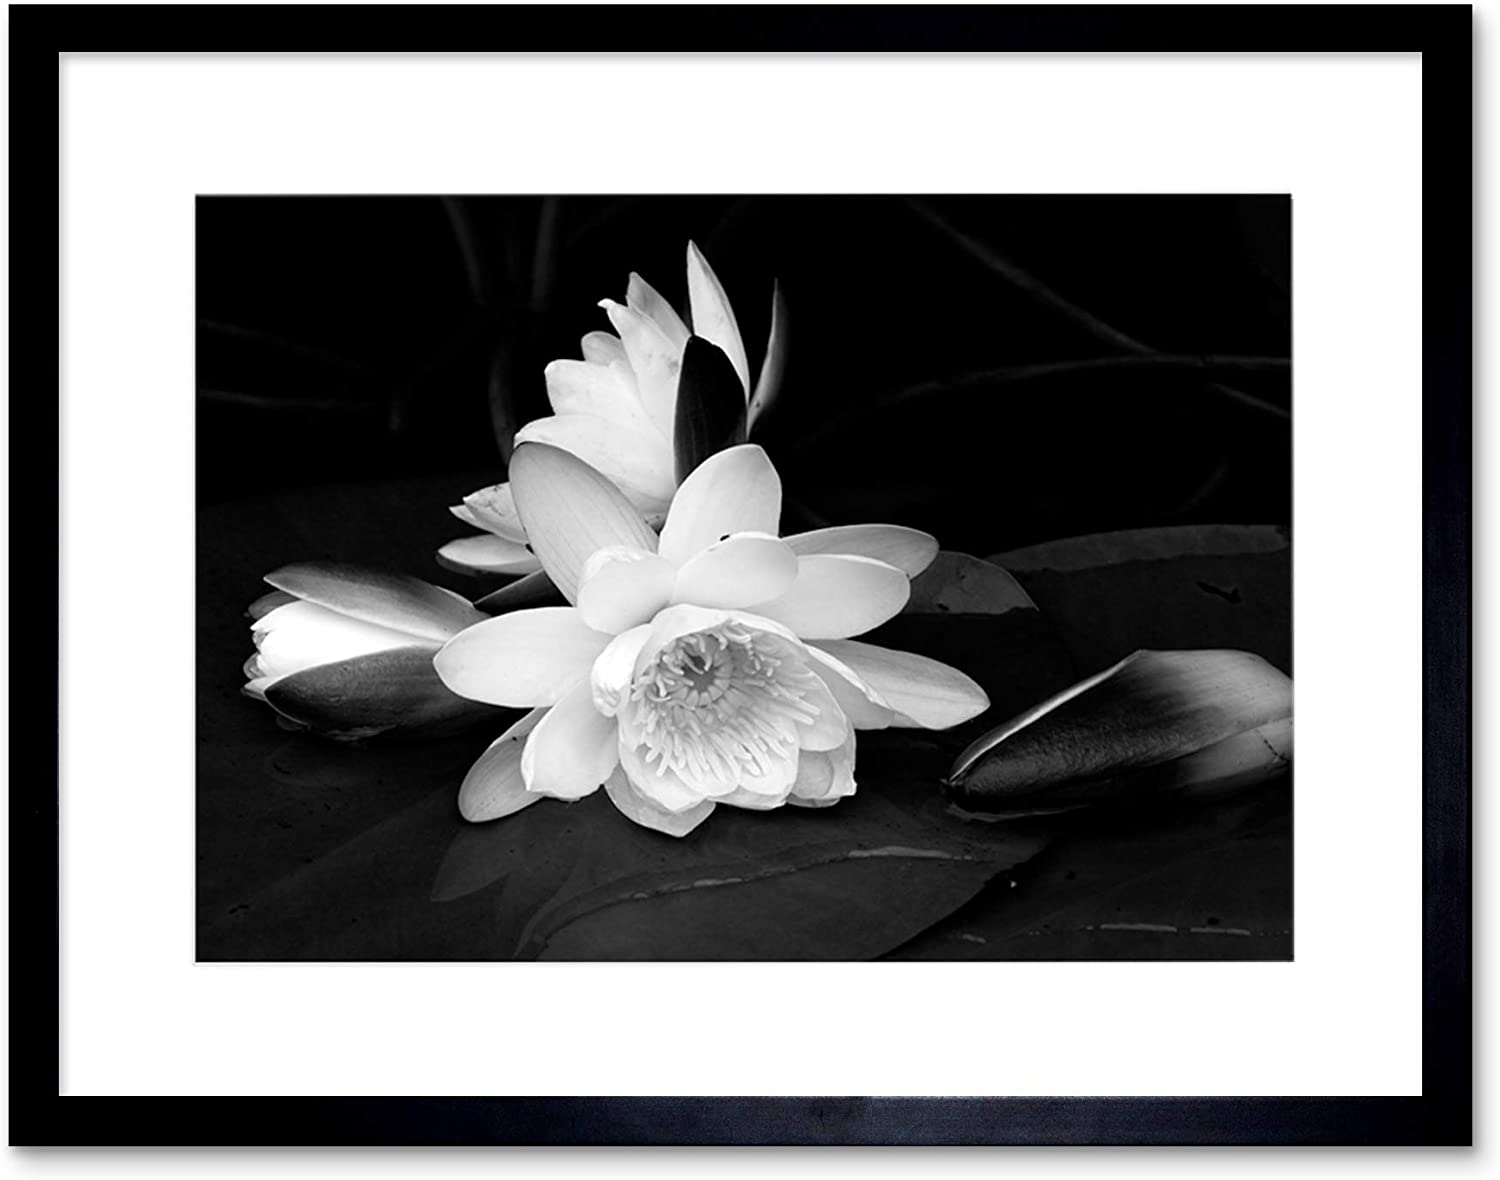 Amazon Com White Flower Bloom Black Background Framed Art Print Picture B12x9435 Posters Prints